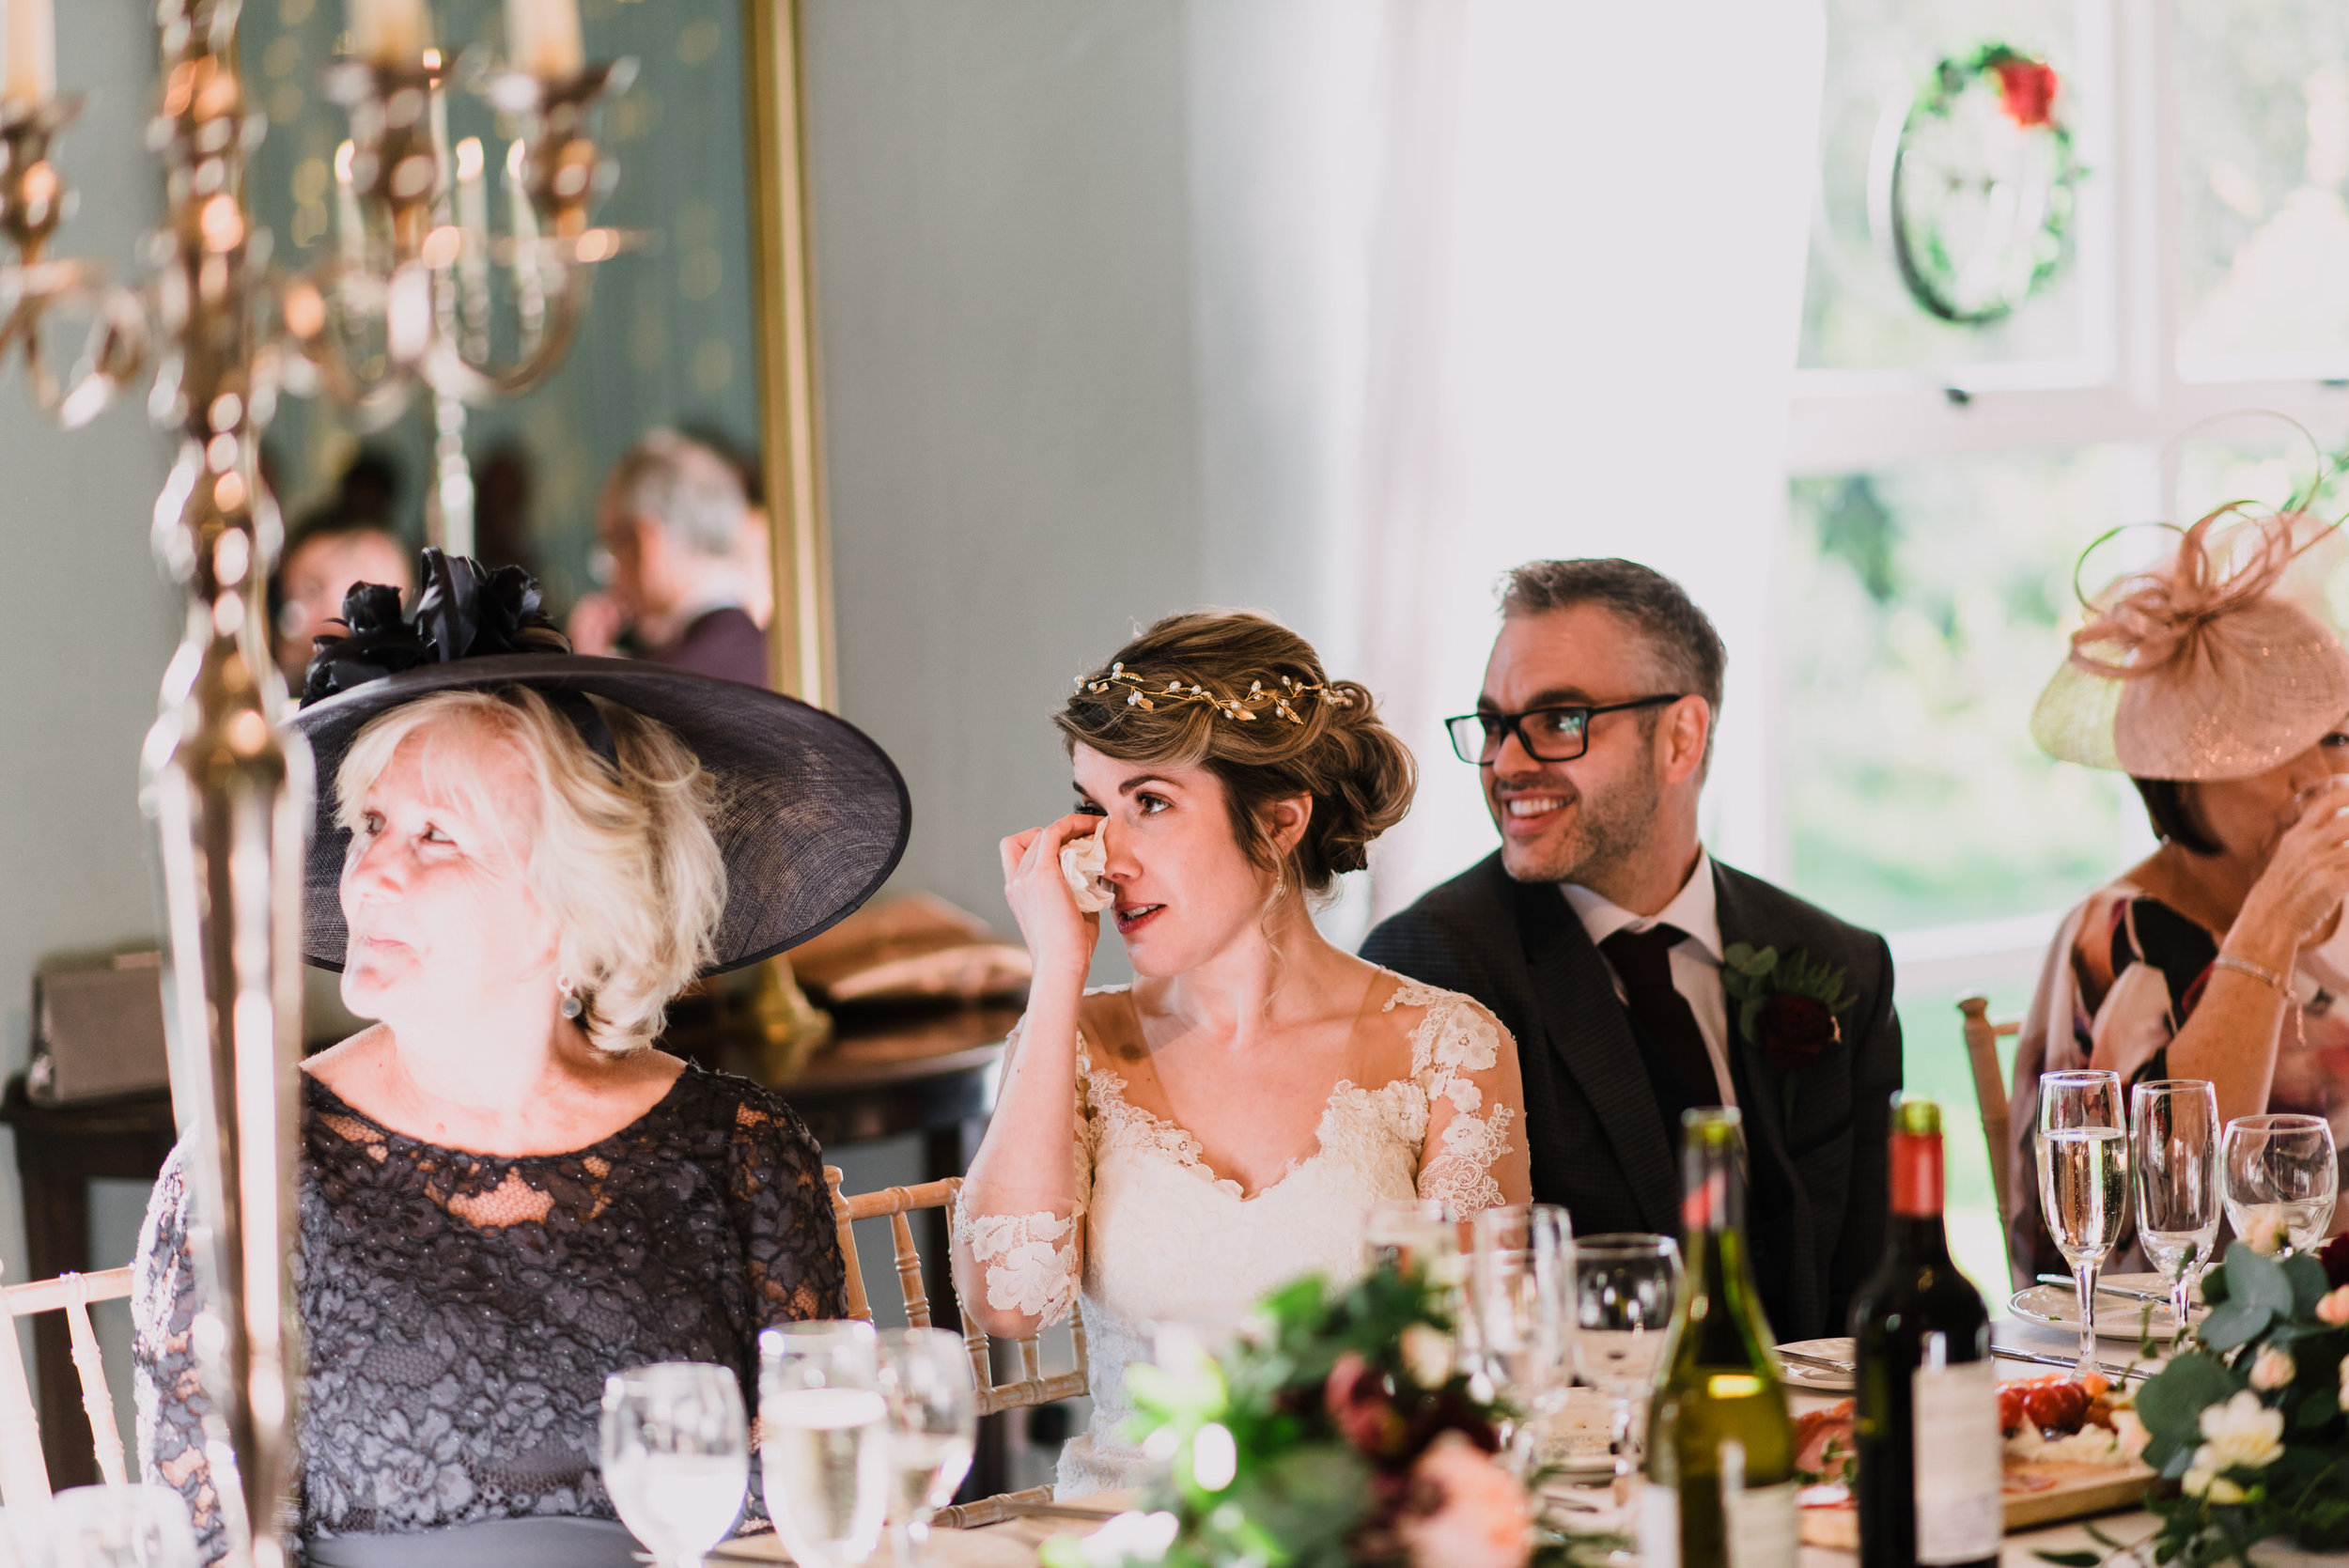 lissanoure castle wedding, northern ireland wedding photographer, romantic northern irish wedding venue, castle wedding ireland, natural wedding photography ni (110).jpg